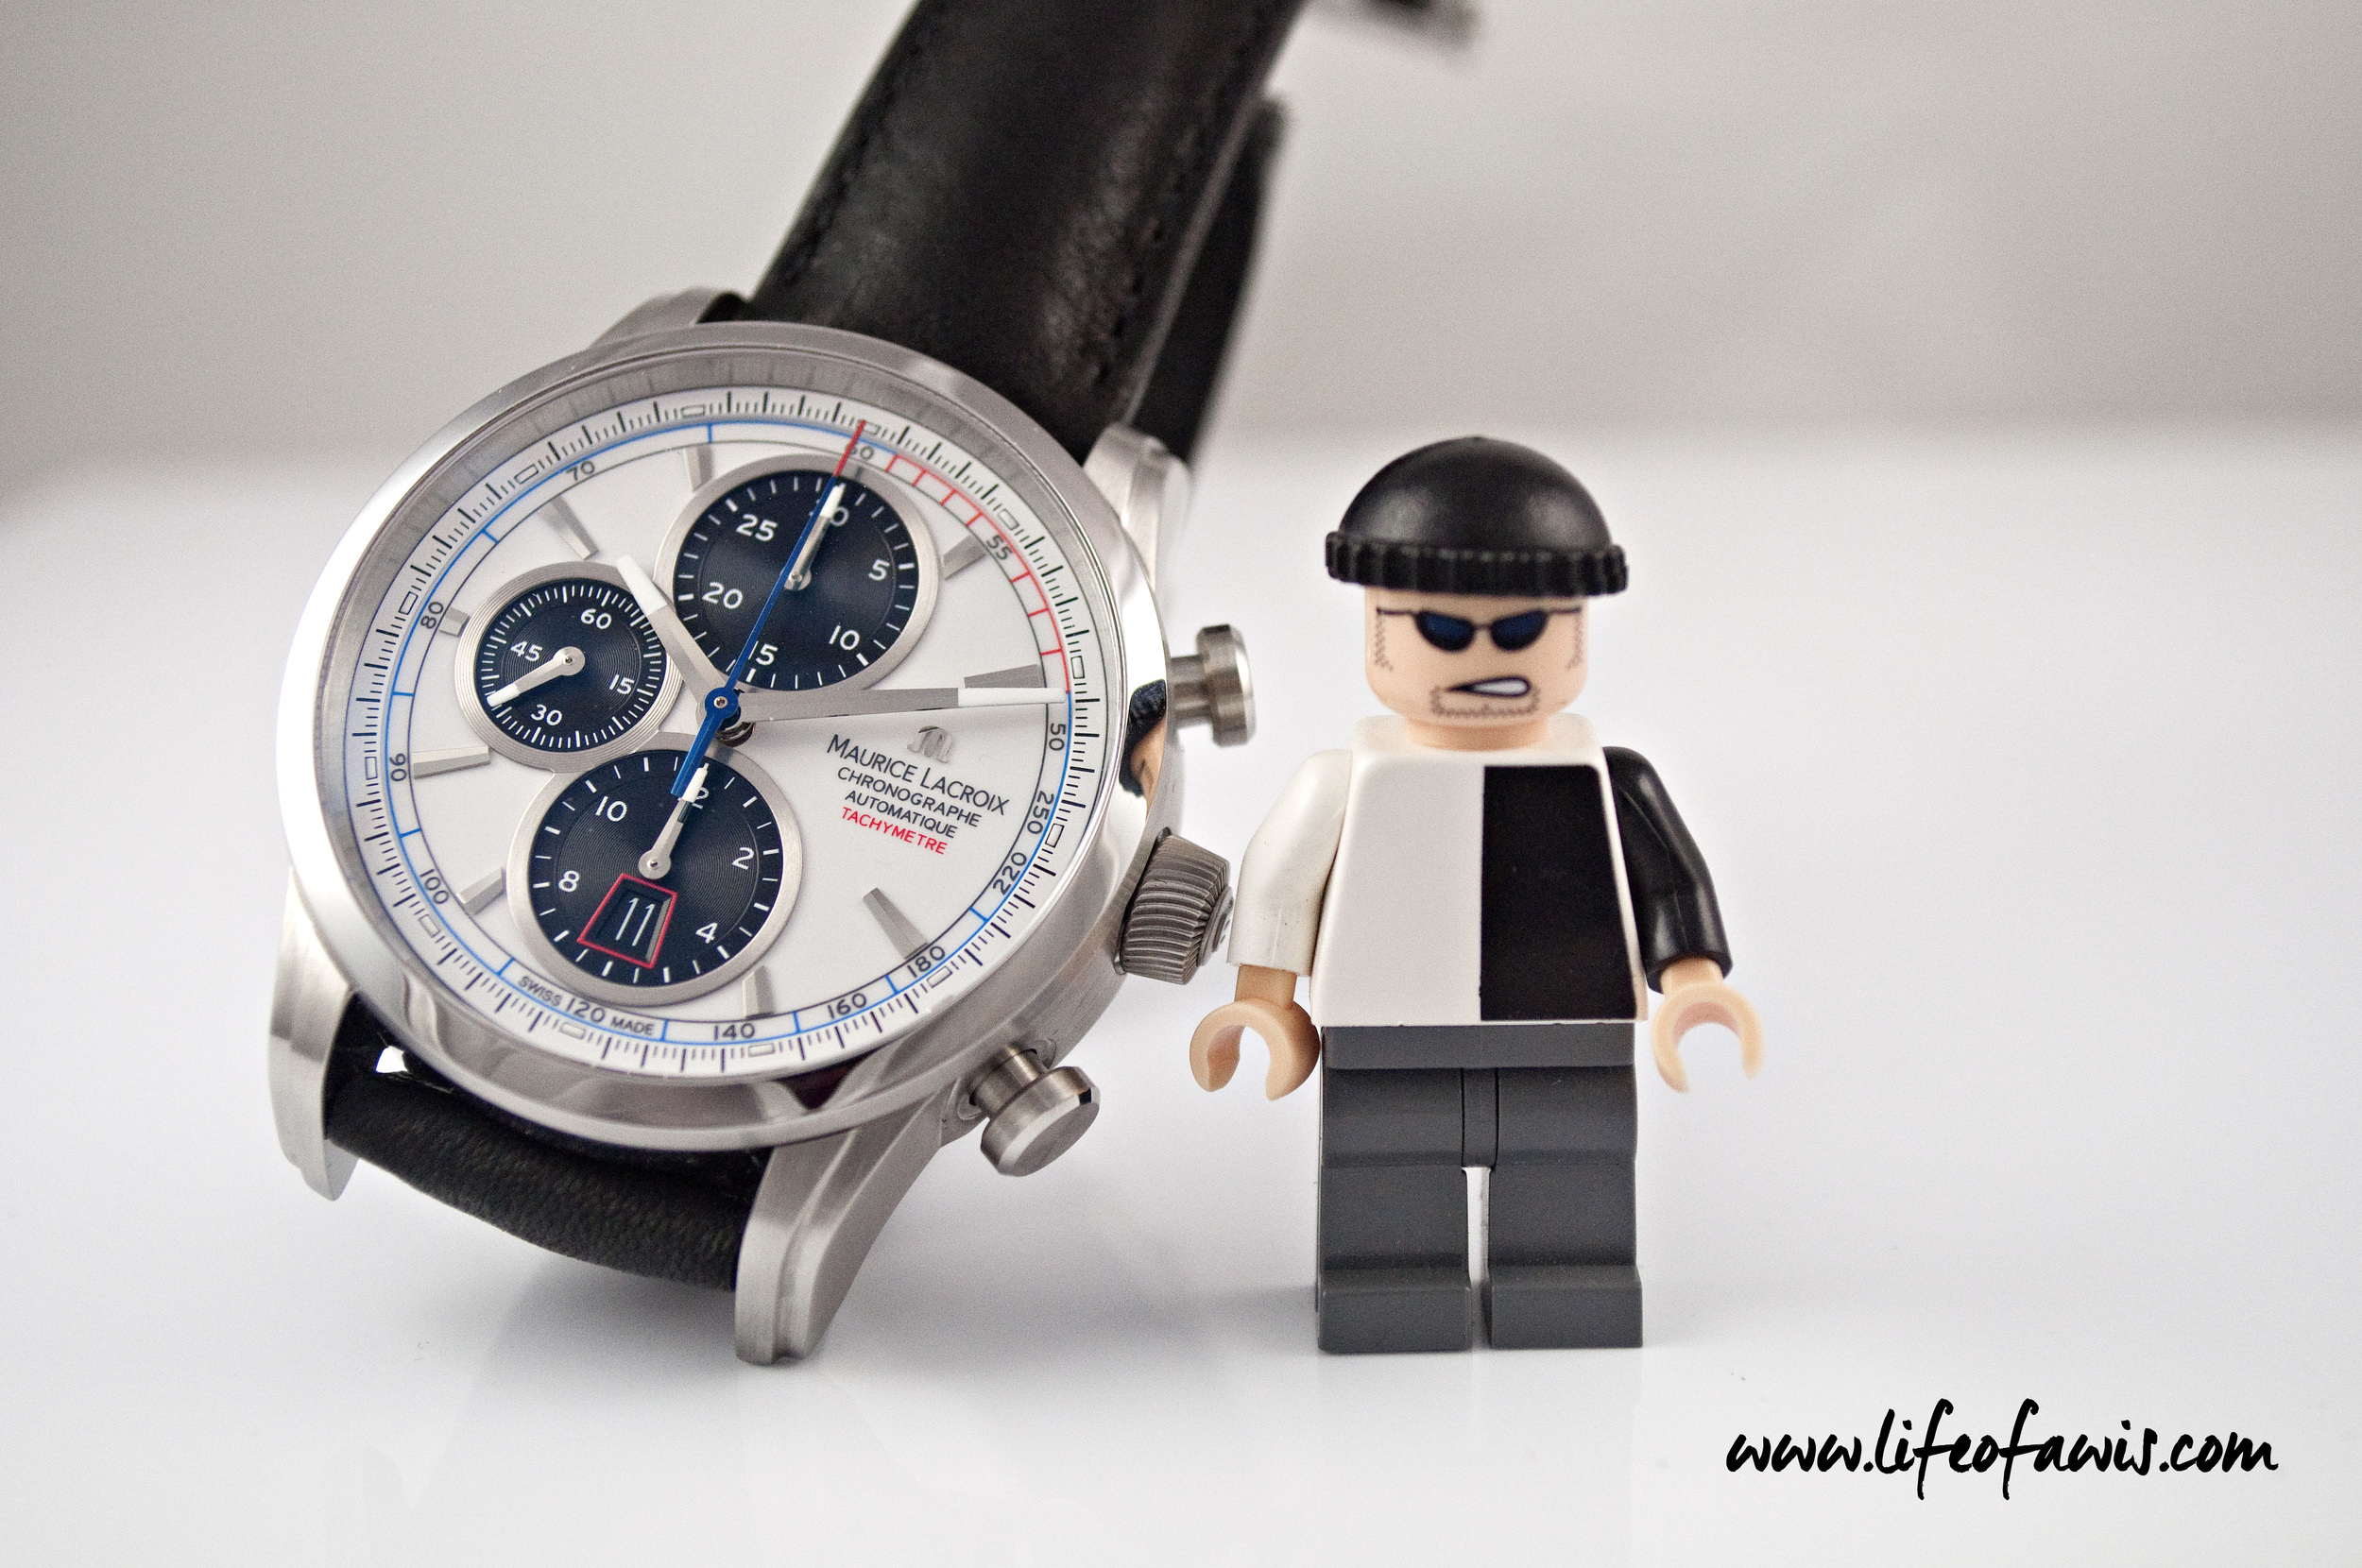 Beware of that Lego figure... I think he likes the Pontos Chronograph as well.